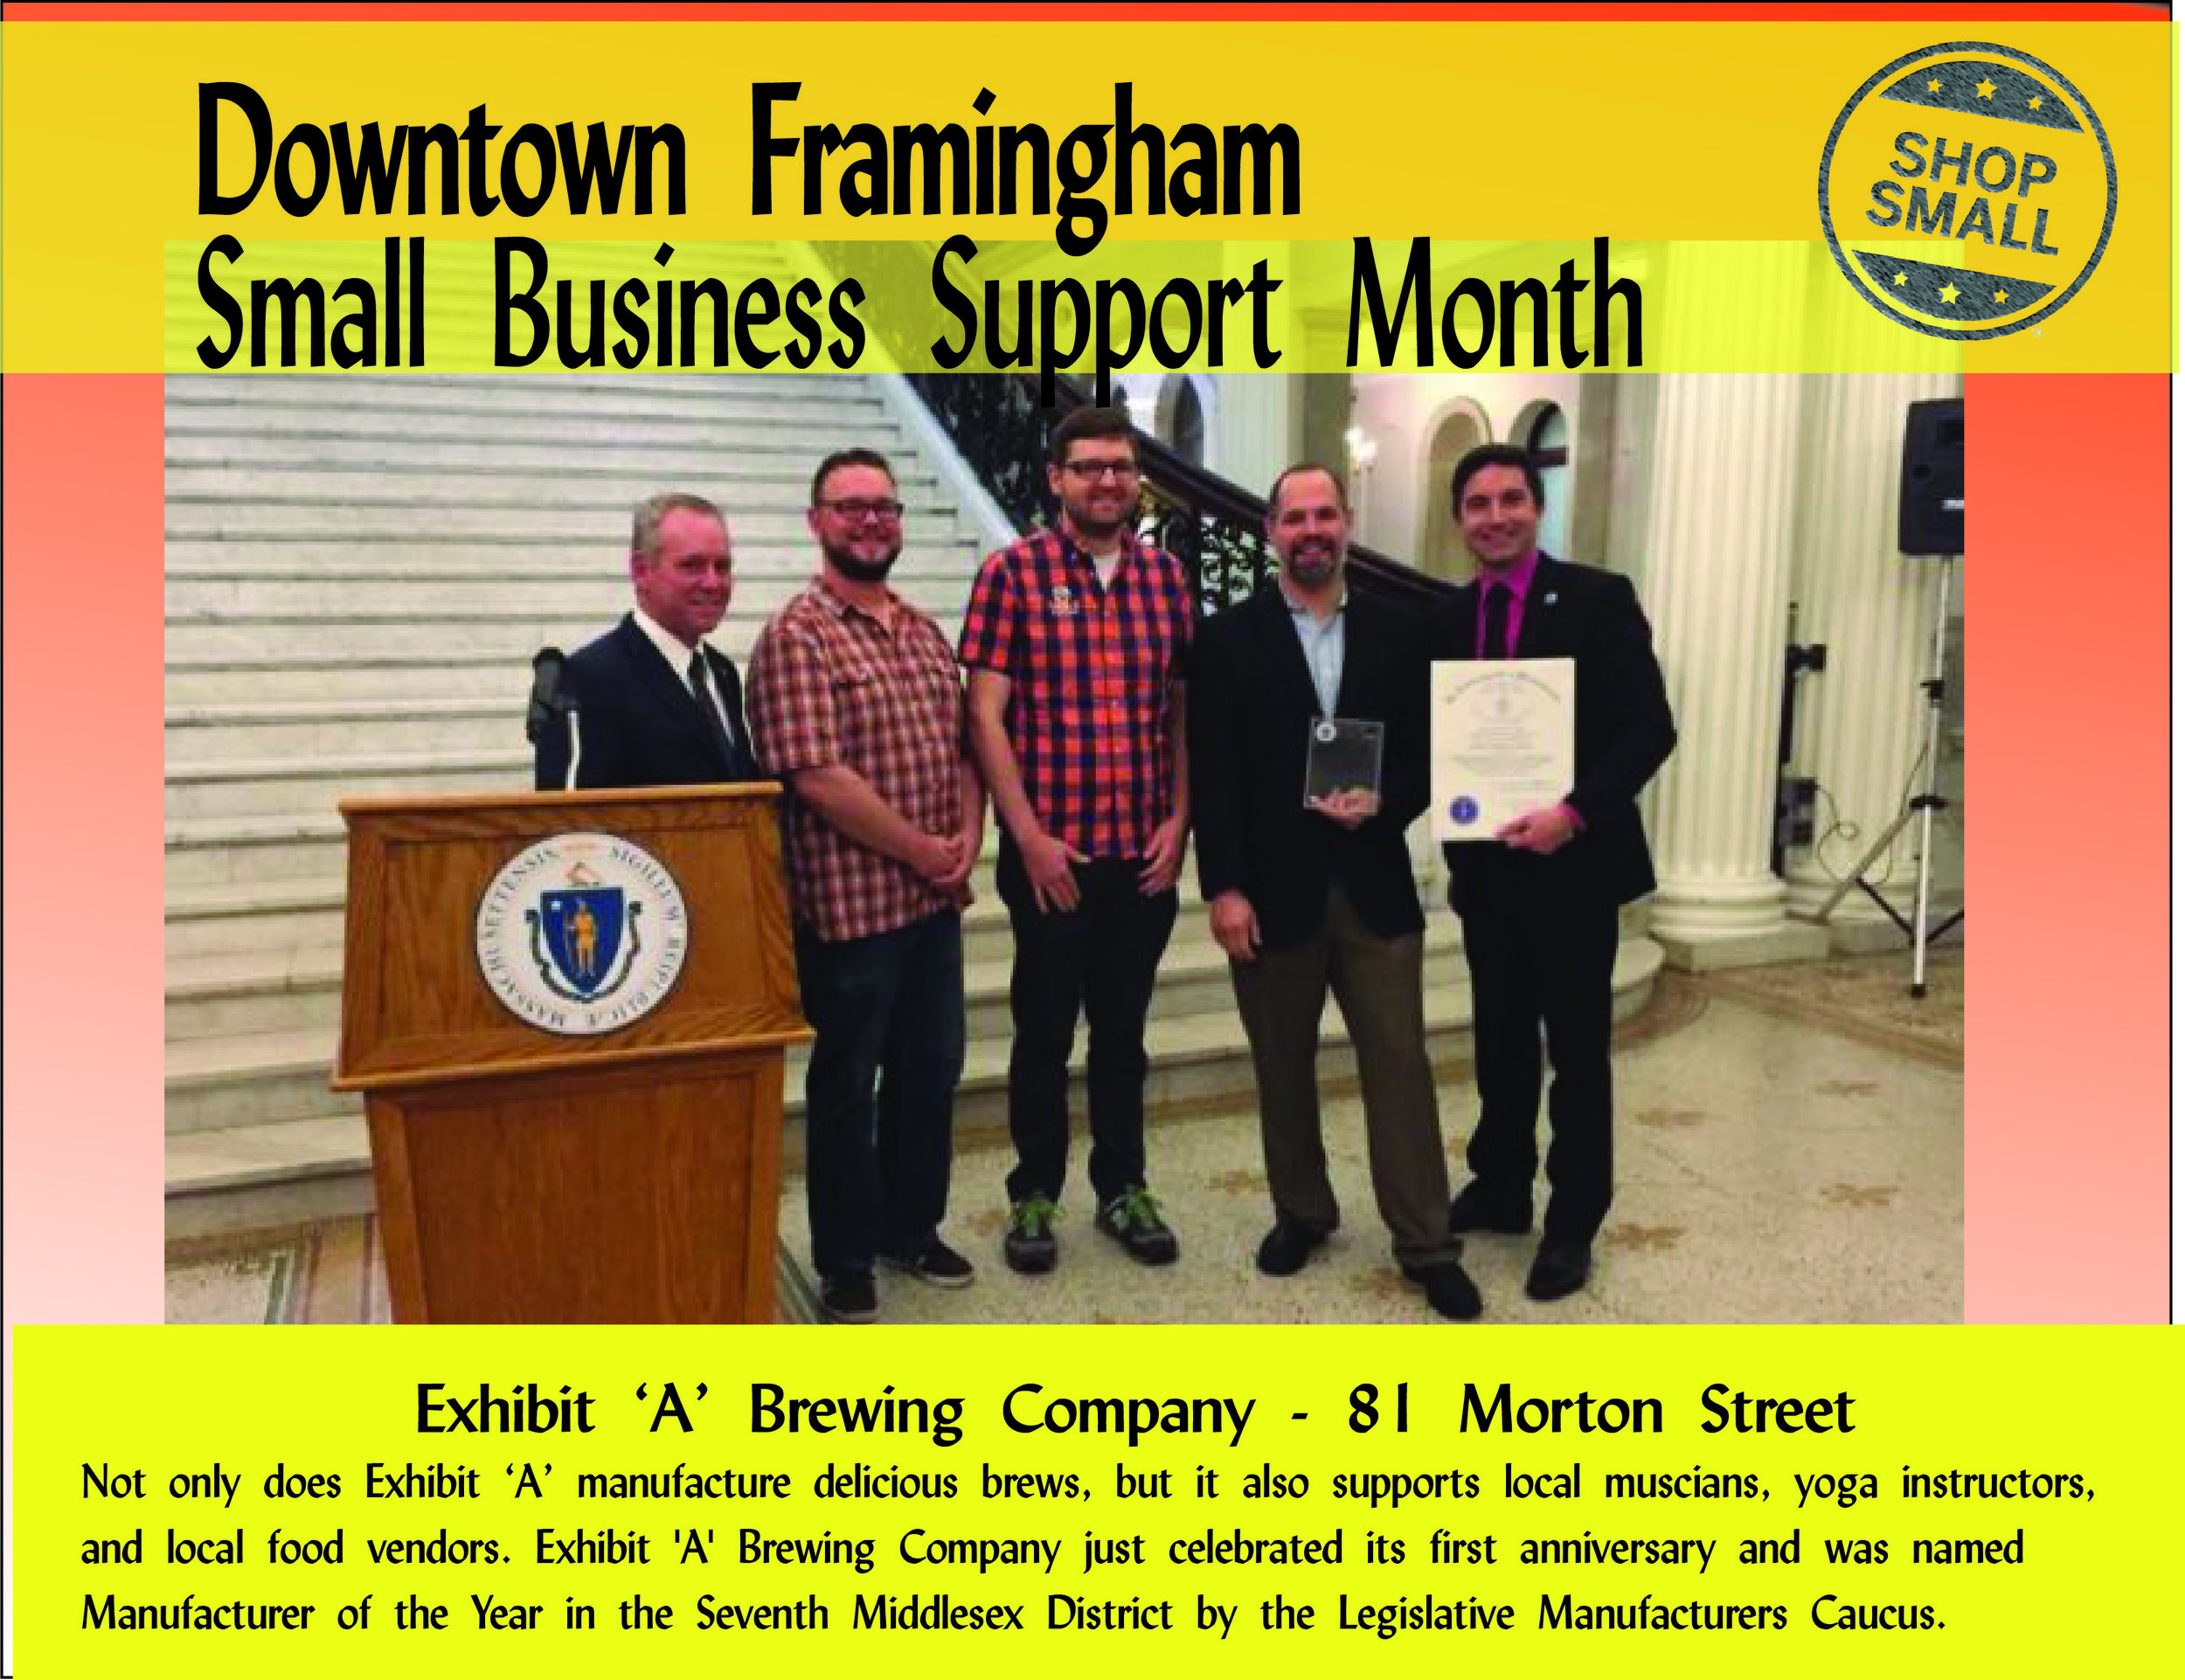 It's Day 13 of Small Business Support Month! Reason #13 to shop small : enhance the health of local residents! Research shows a strong correlation between the percentage of small locally-owned firms and various indicators of personal and community health and vitality.  Today's promo is  Exhibit 'A' Brewing Company ! Check out this award-winning business that supports other local entrepreneurs, including musicians, yoga instructors, and food truck operators!  Content Source:  https://www.amiba.net/resources/localhero/